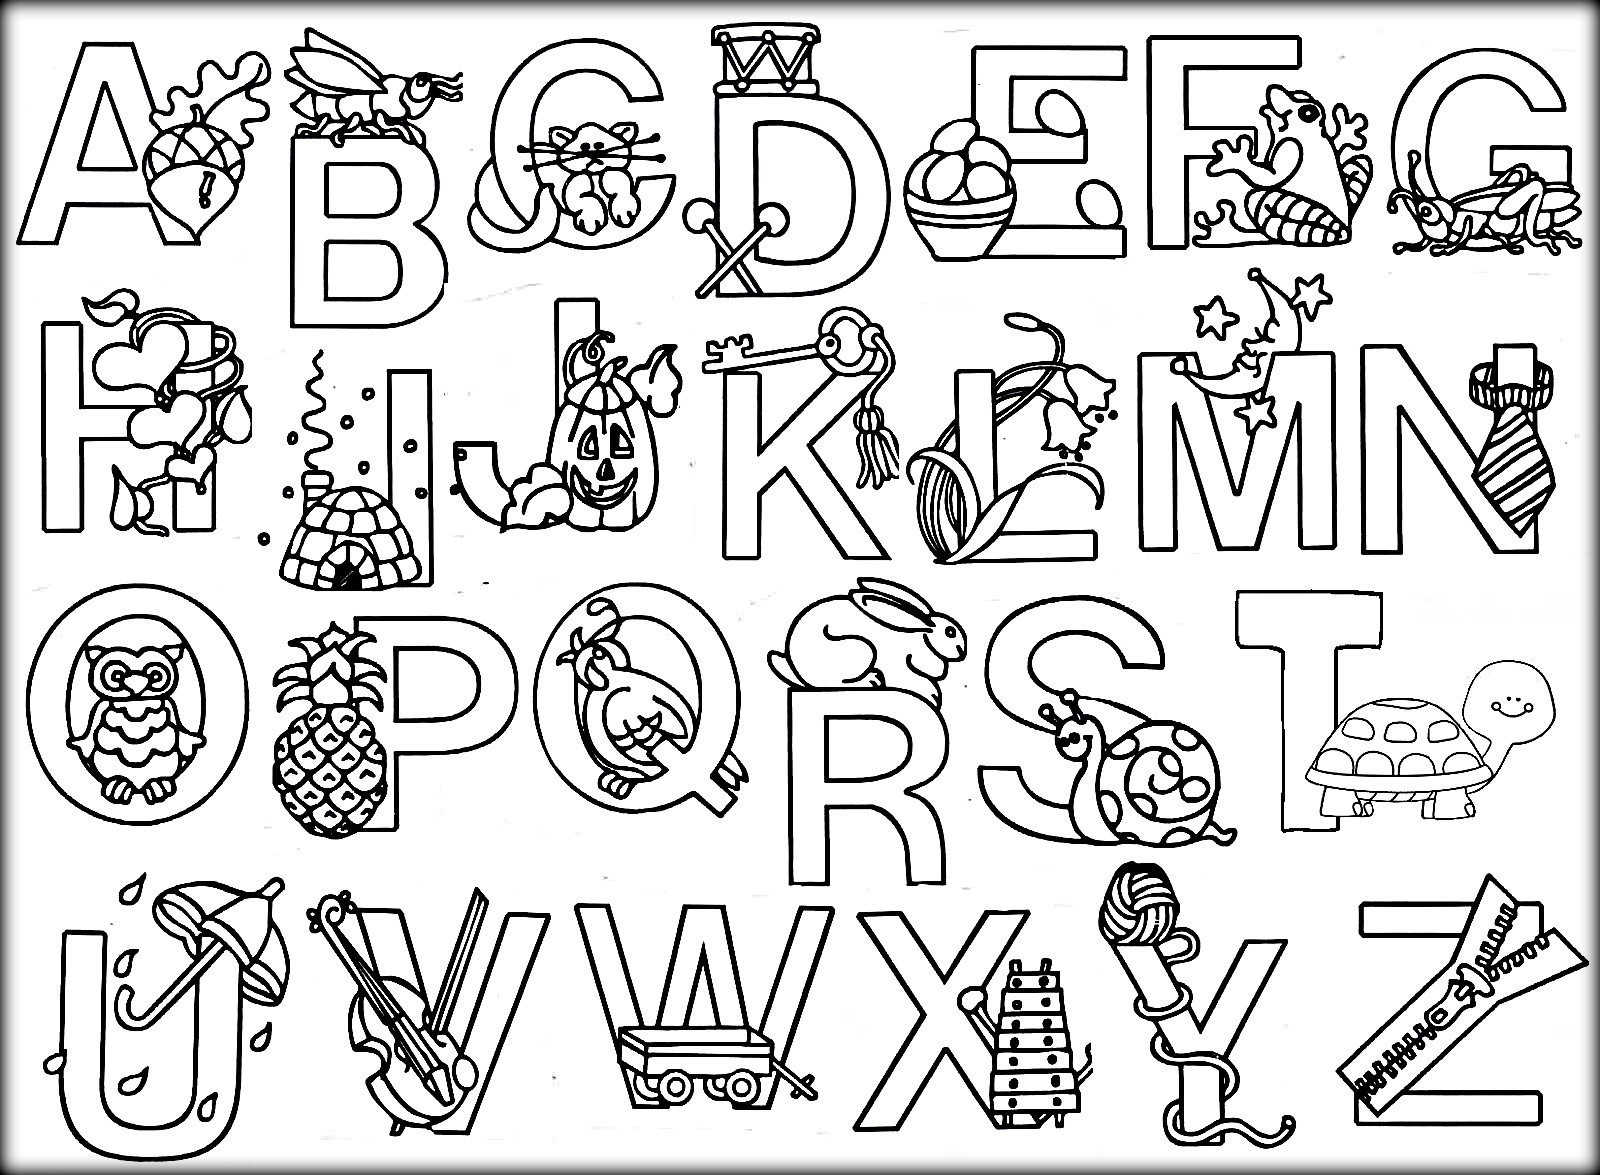 A B C Coloring Books  Impressive Alphabet Colouring Page 614